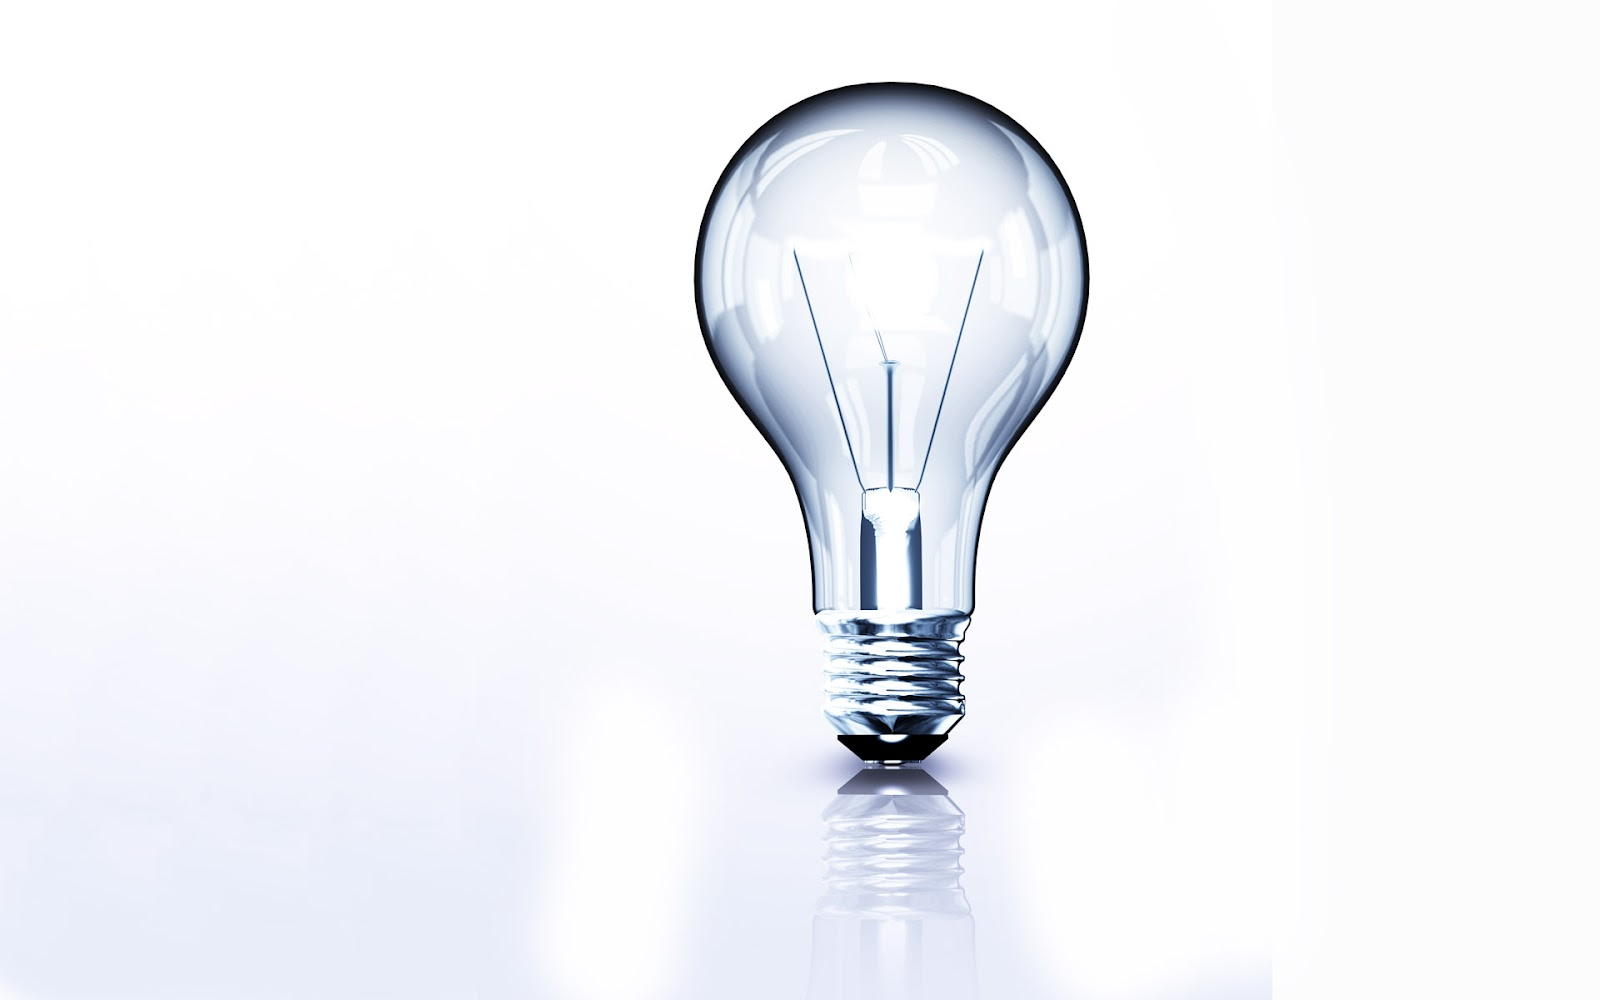 http://3.bp.blogspot.com/-qgJ0ZMpajos/T0pMvVAgqyI/AAAAAAAAHX8/ylyv_VhGcAY/s1600/White_Light_Bulb.jpg